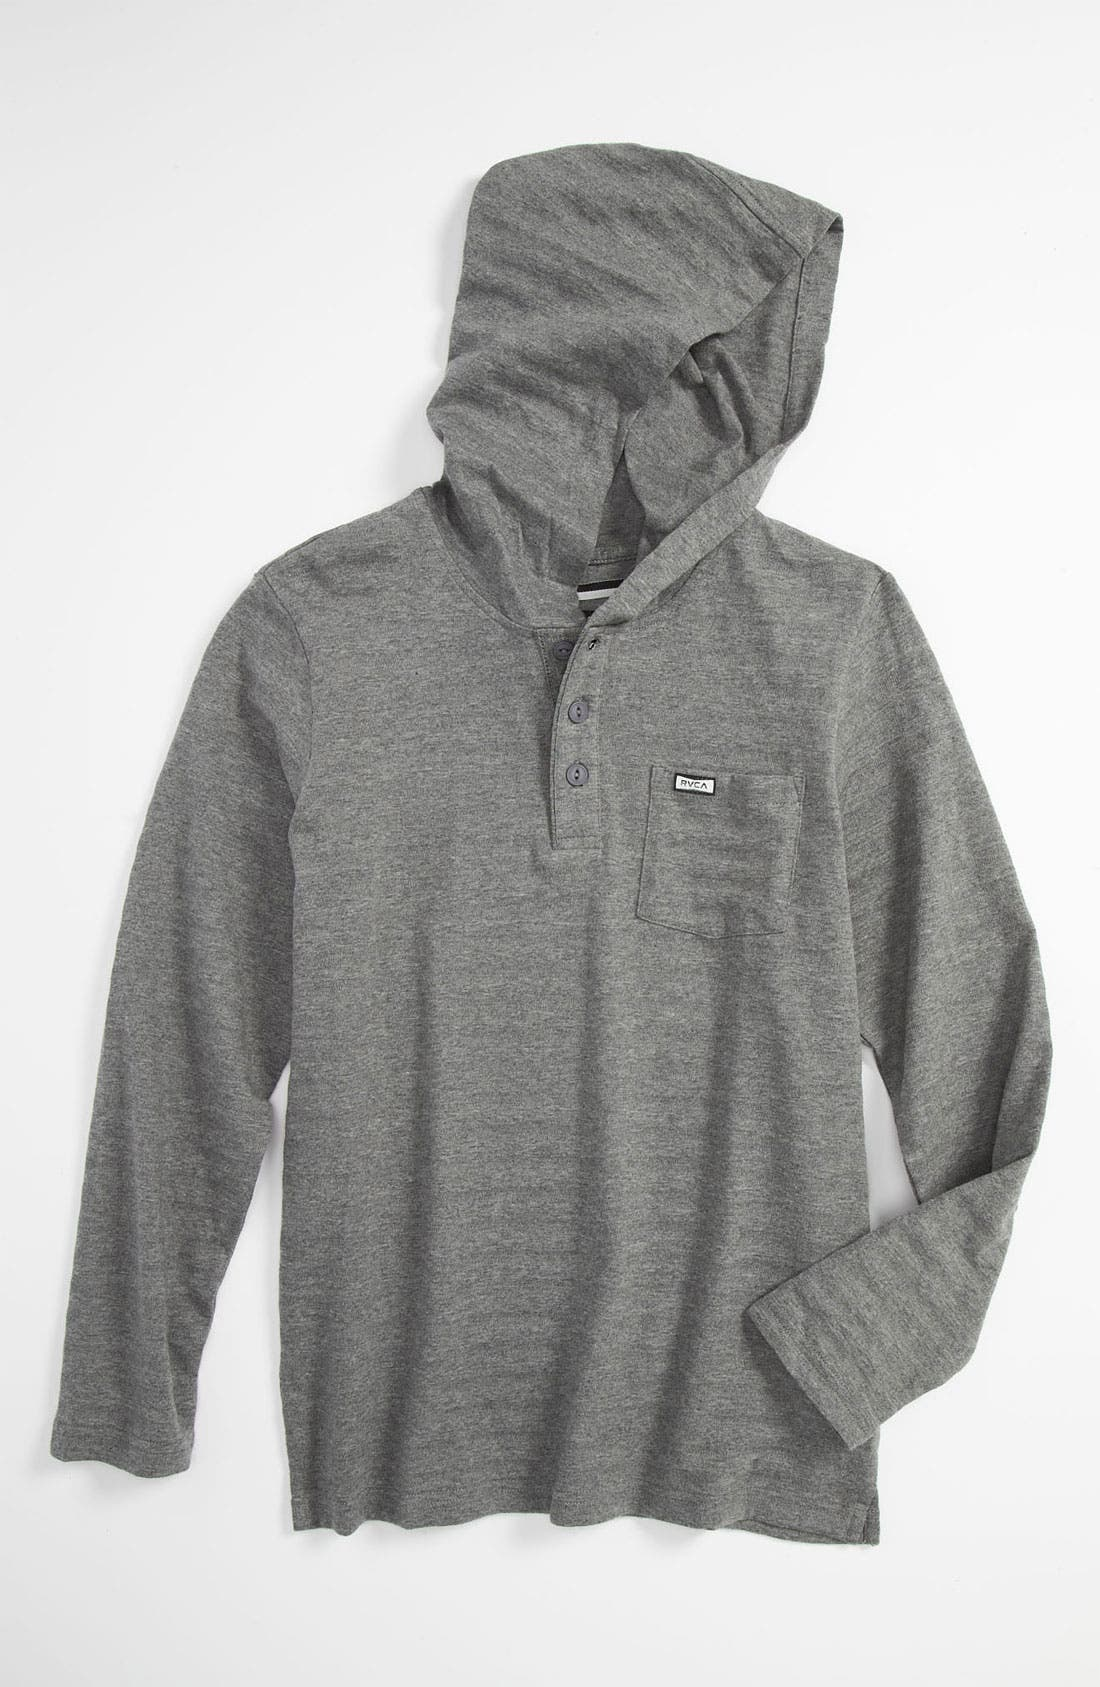 Alternate Image 1 Selected - RVCA 'Shopkeeper' Hoodie (Big Boys)